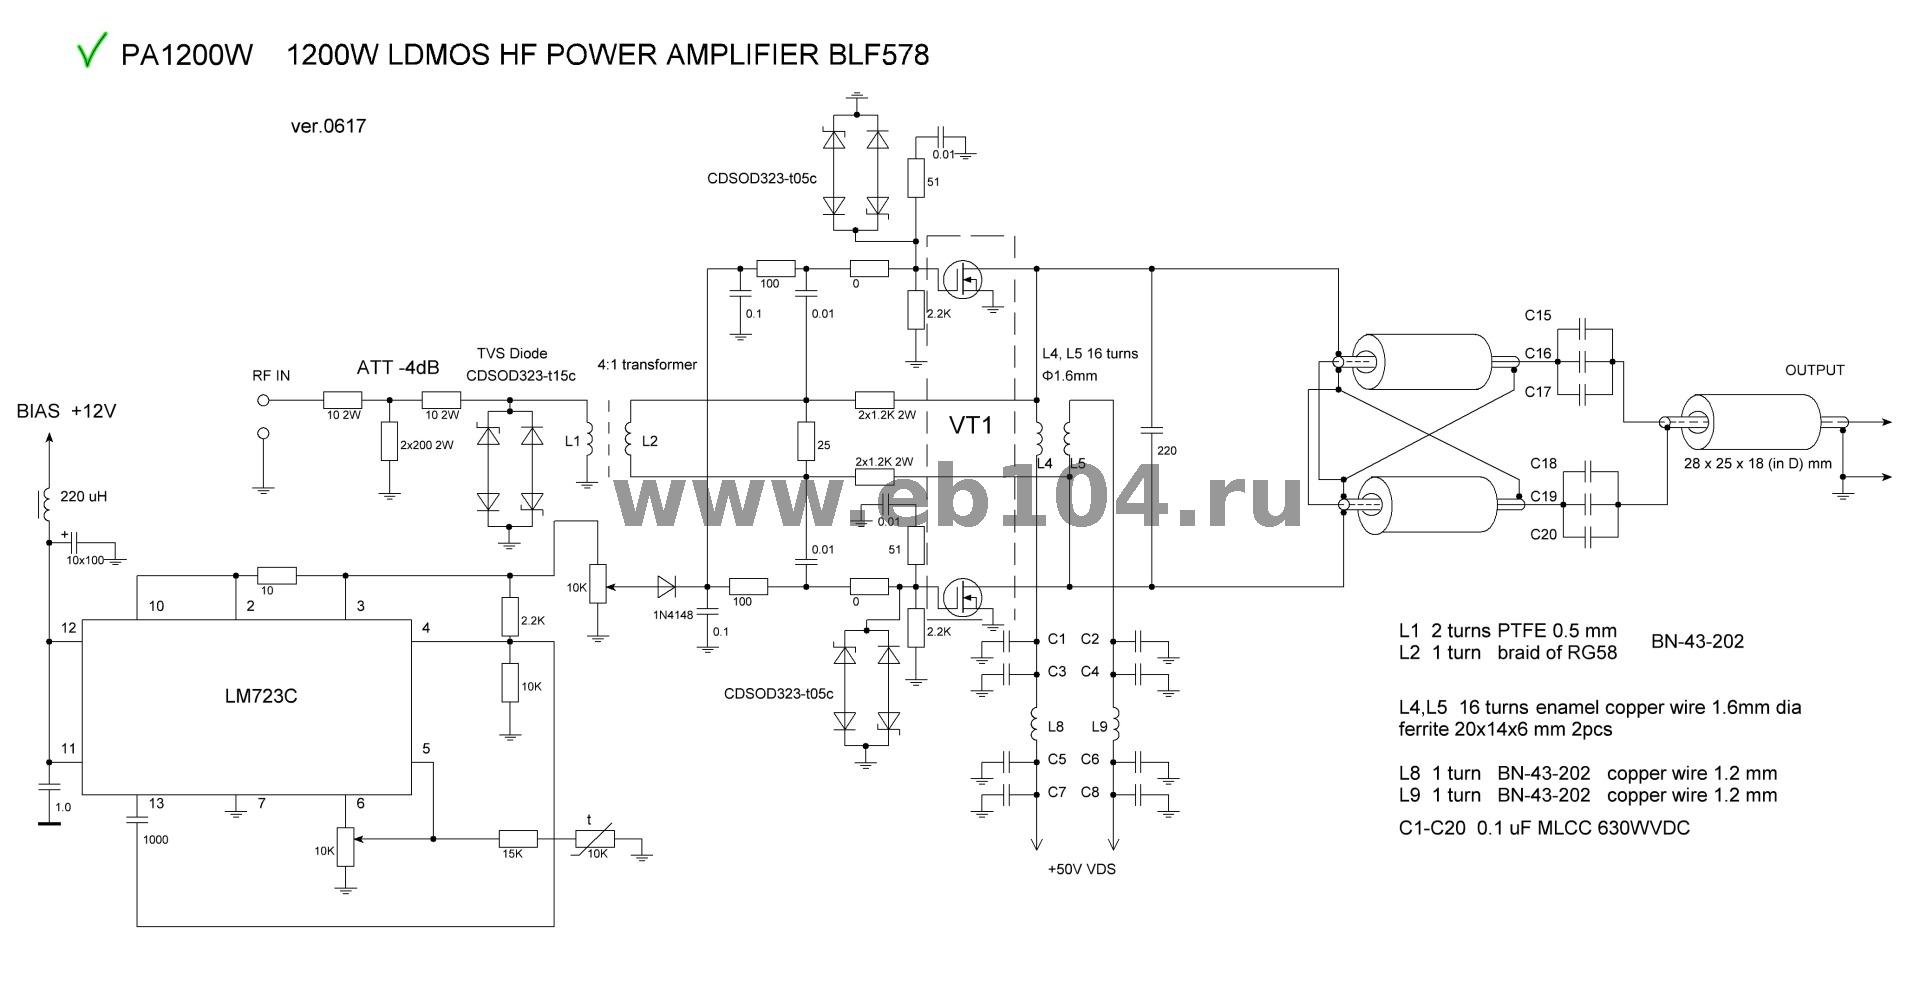 Hf Power Amplifier Ldmos Trasistor 1000 1200 2400w Output 50 W Transistor 12 Kw Board Assembled 18 54mhz The Consists Of Two Parts And May Accept Different Types Transistorsblf578